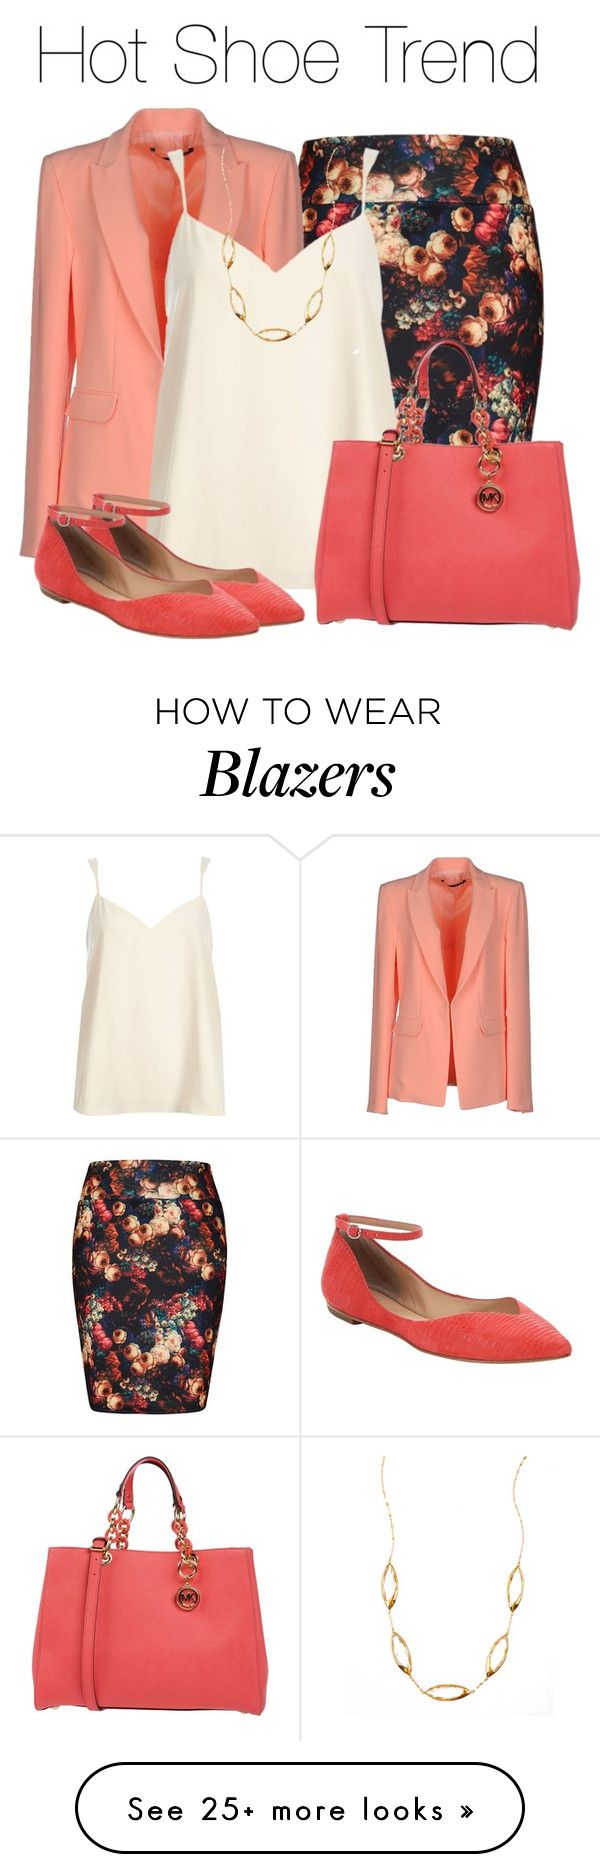 """""""So Stylish: Ankle Wrap Flats"""" by earthlyangel on Polyvore featuring City Chic, Annarita N., River Island, belle by Sigerson Morrison, MICHAEL Michael Kors, Lana, contest and anklewrapflats"""